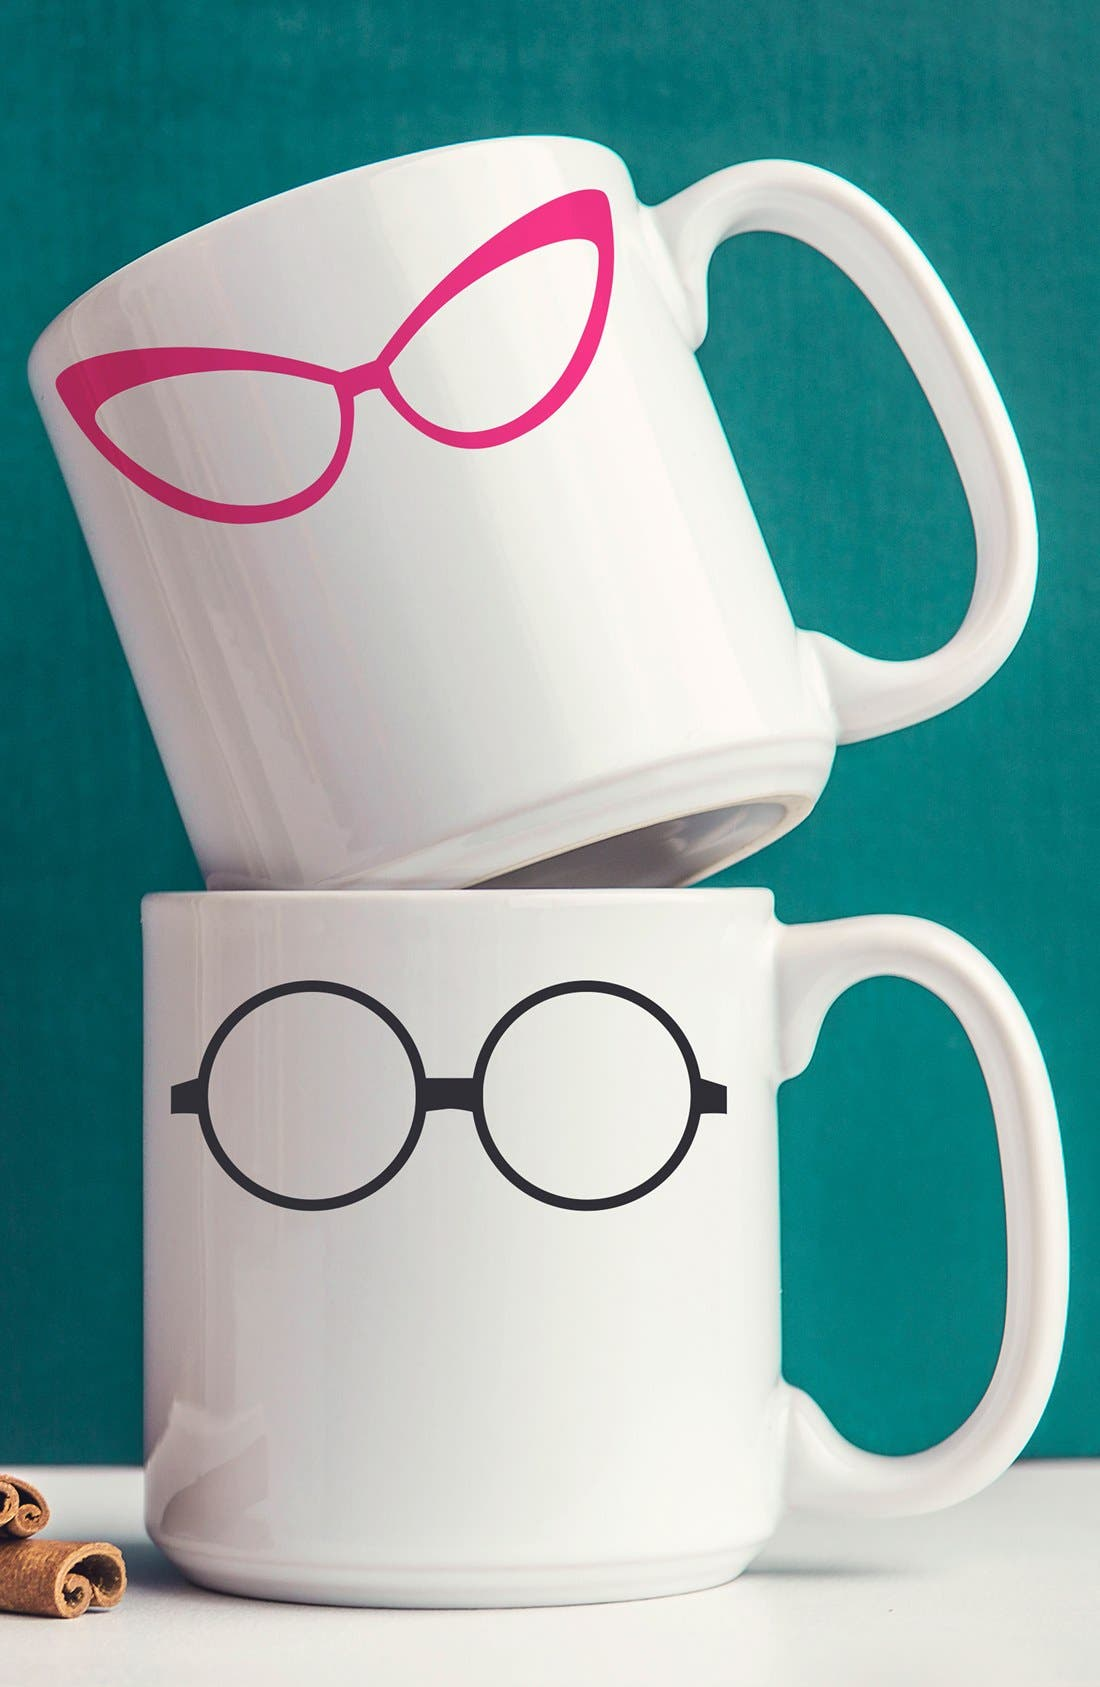 Alternate Image 1 Selected - Cathy's Concepts 'Geek Glasses' Ceramic Coffee Mugs (Set of 2)